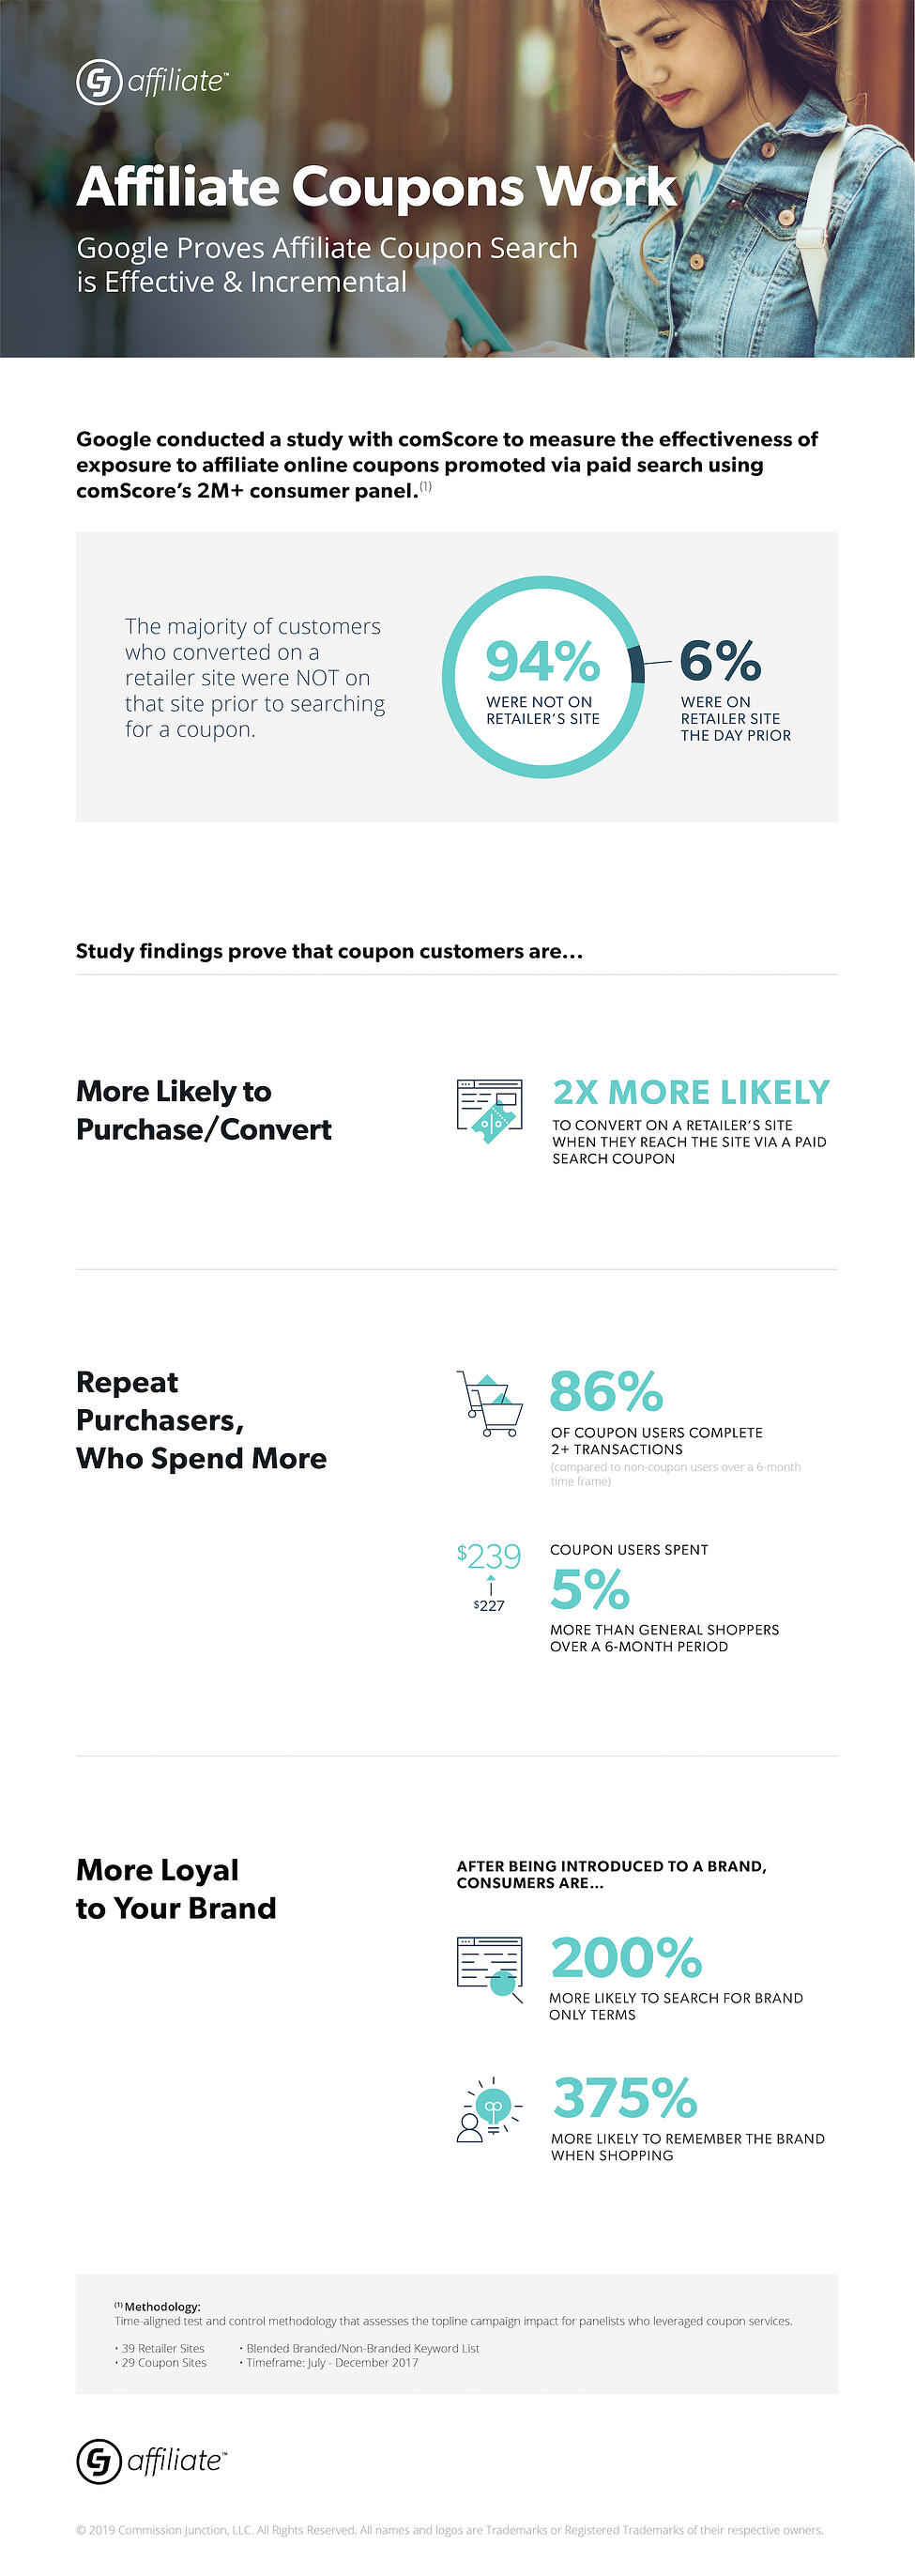 cj-affiliate-google-coupon-infographic-nonbranded